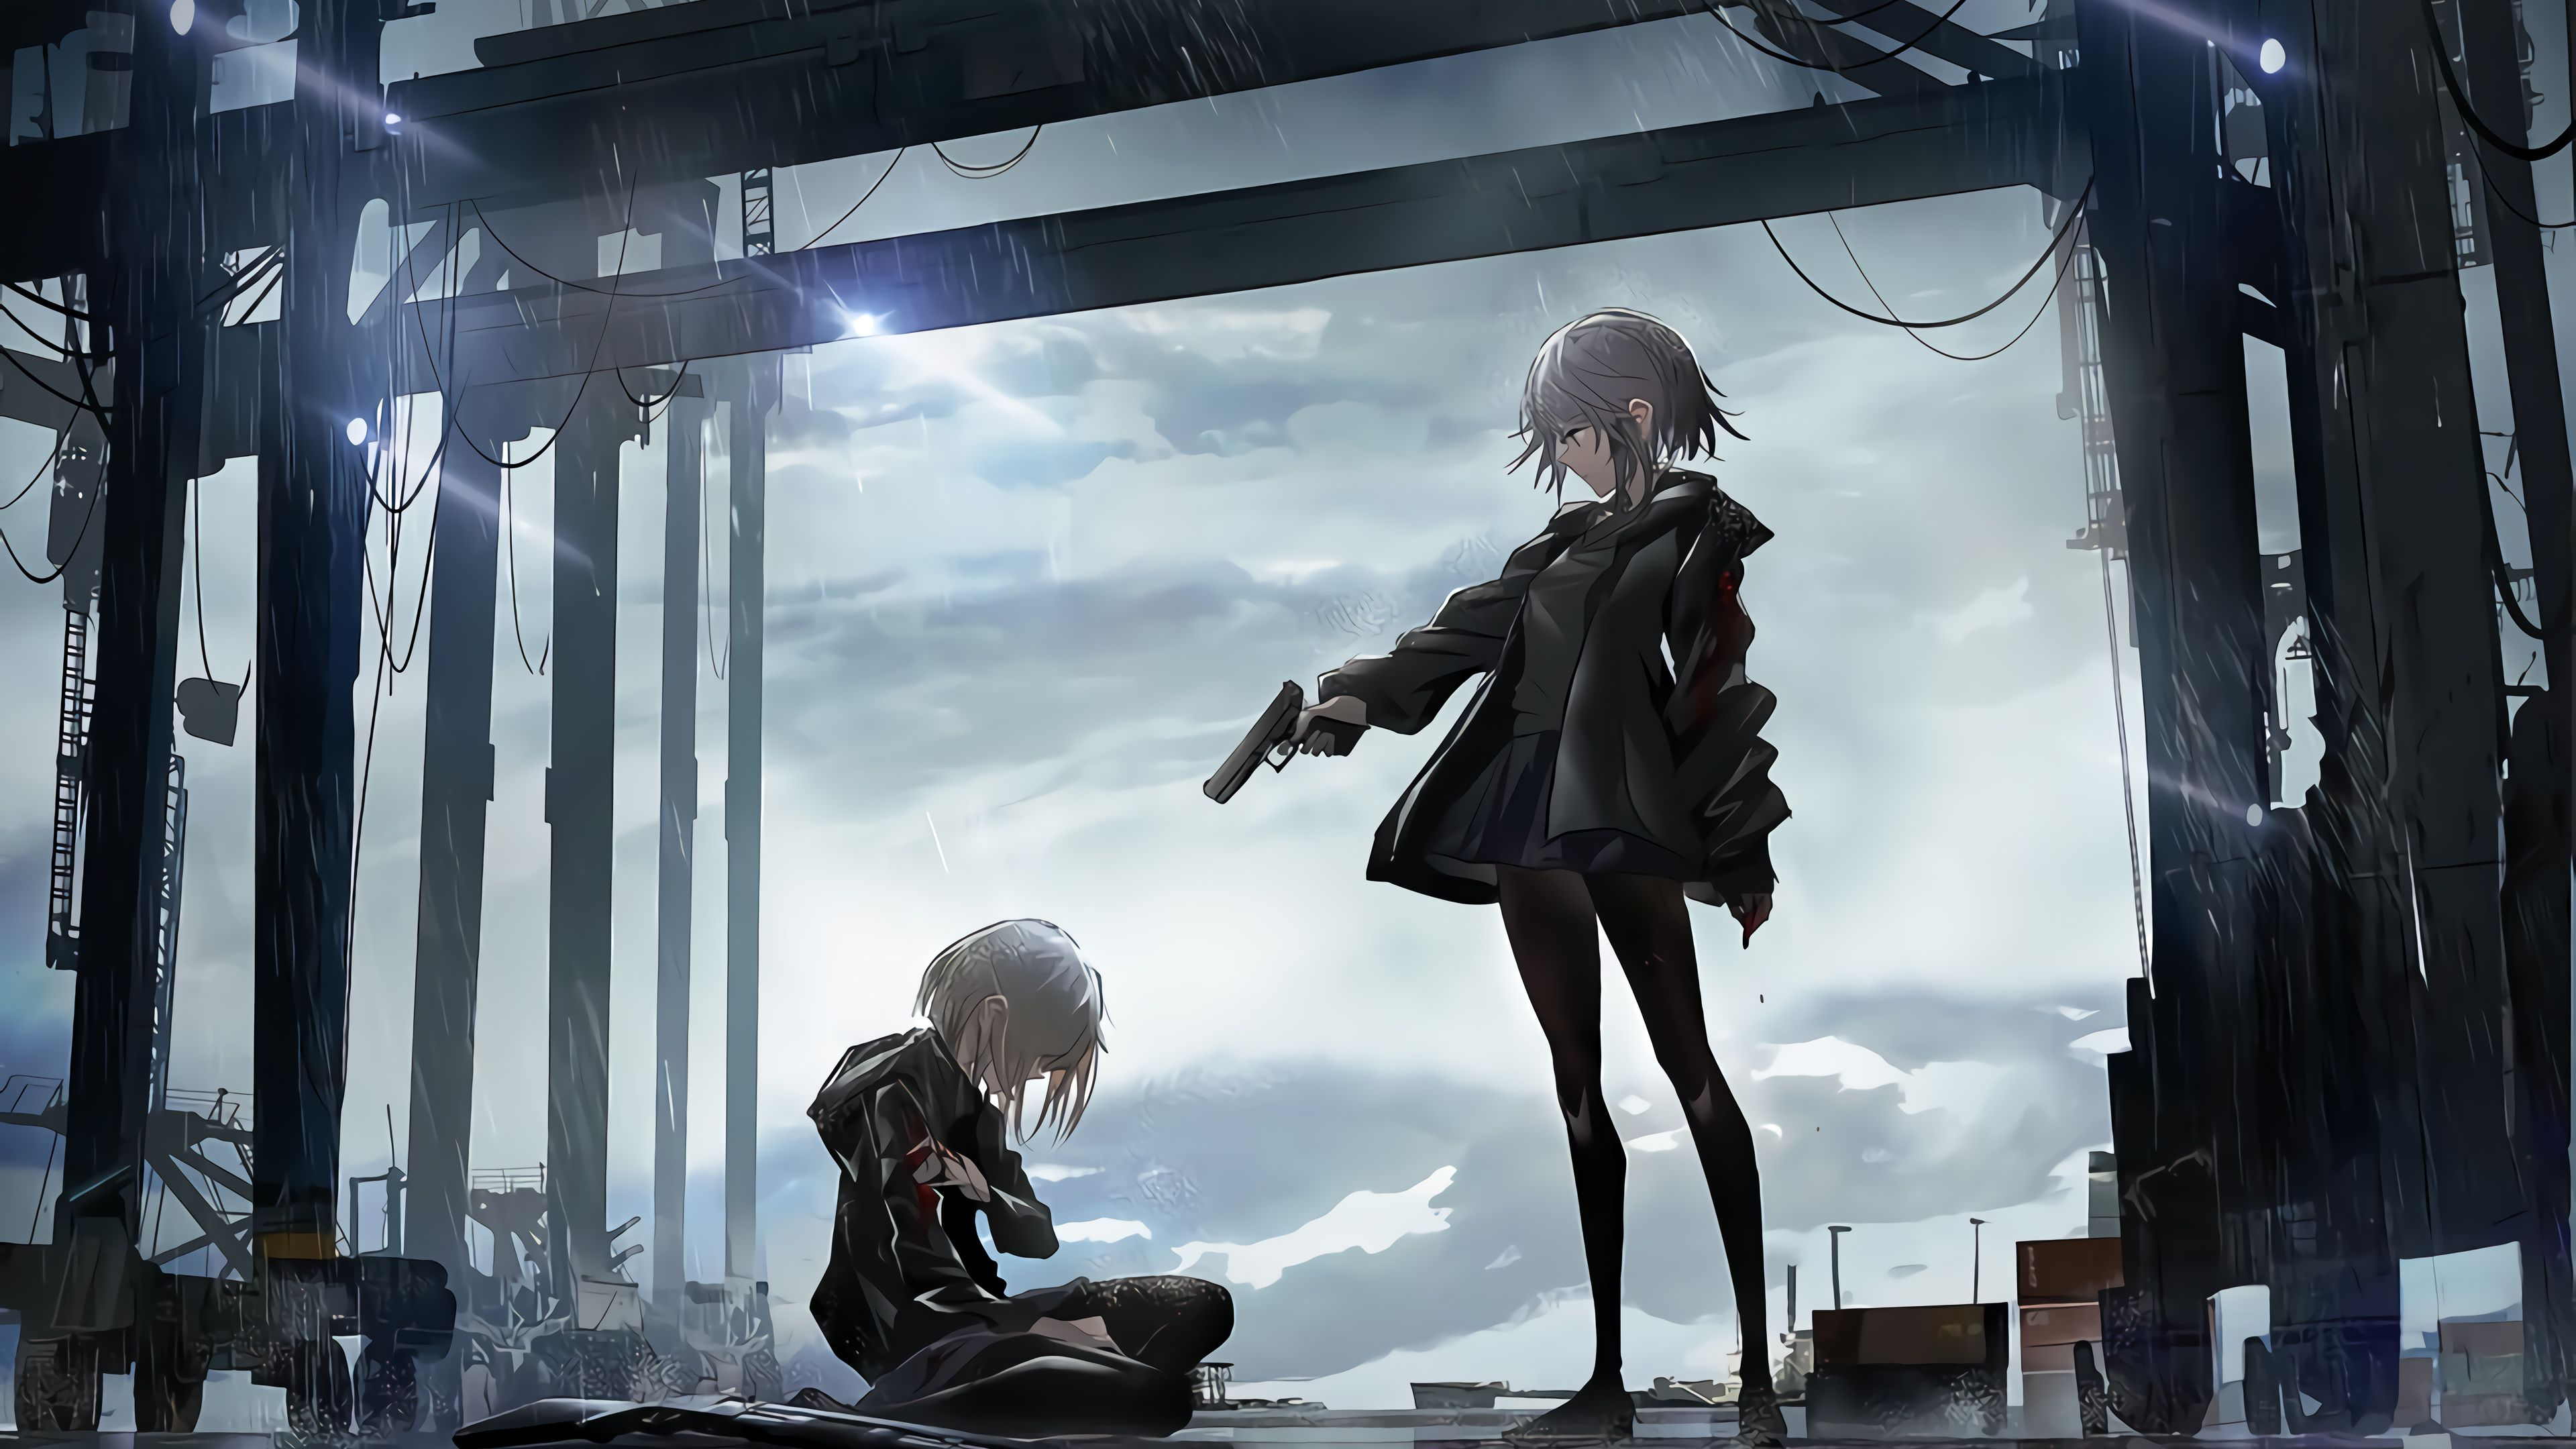 Pin On Backrounds 23 resolution wallpapers anime 4k